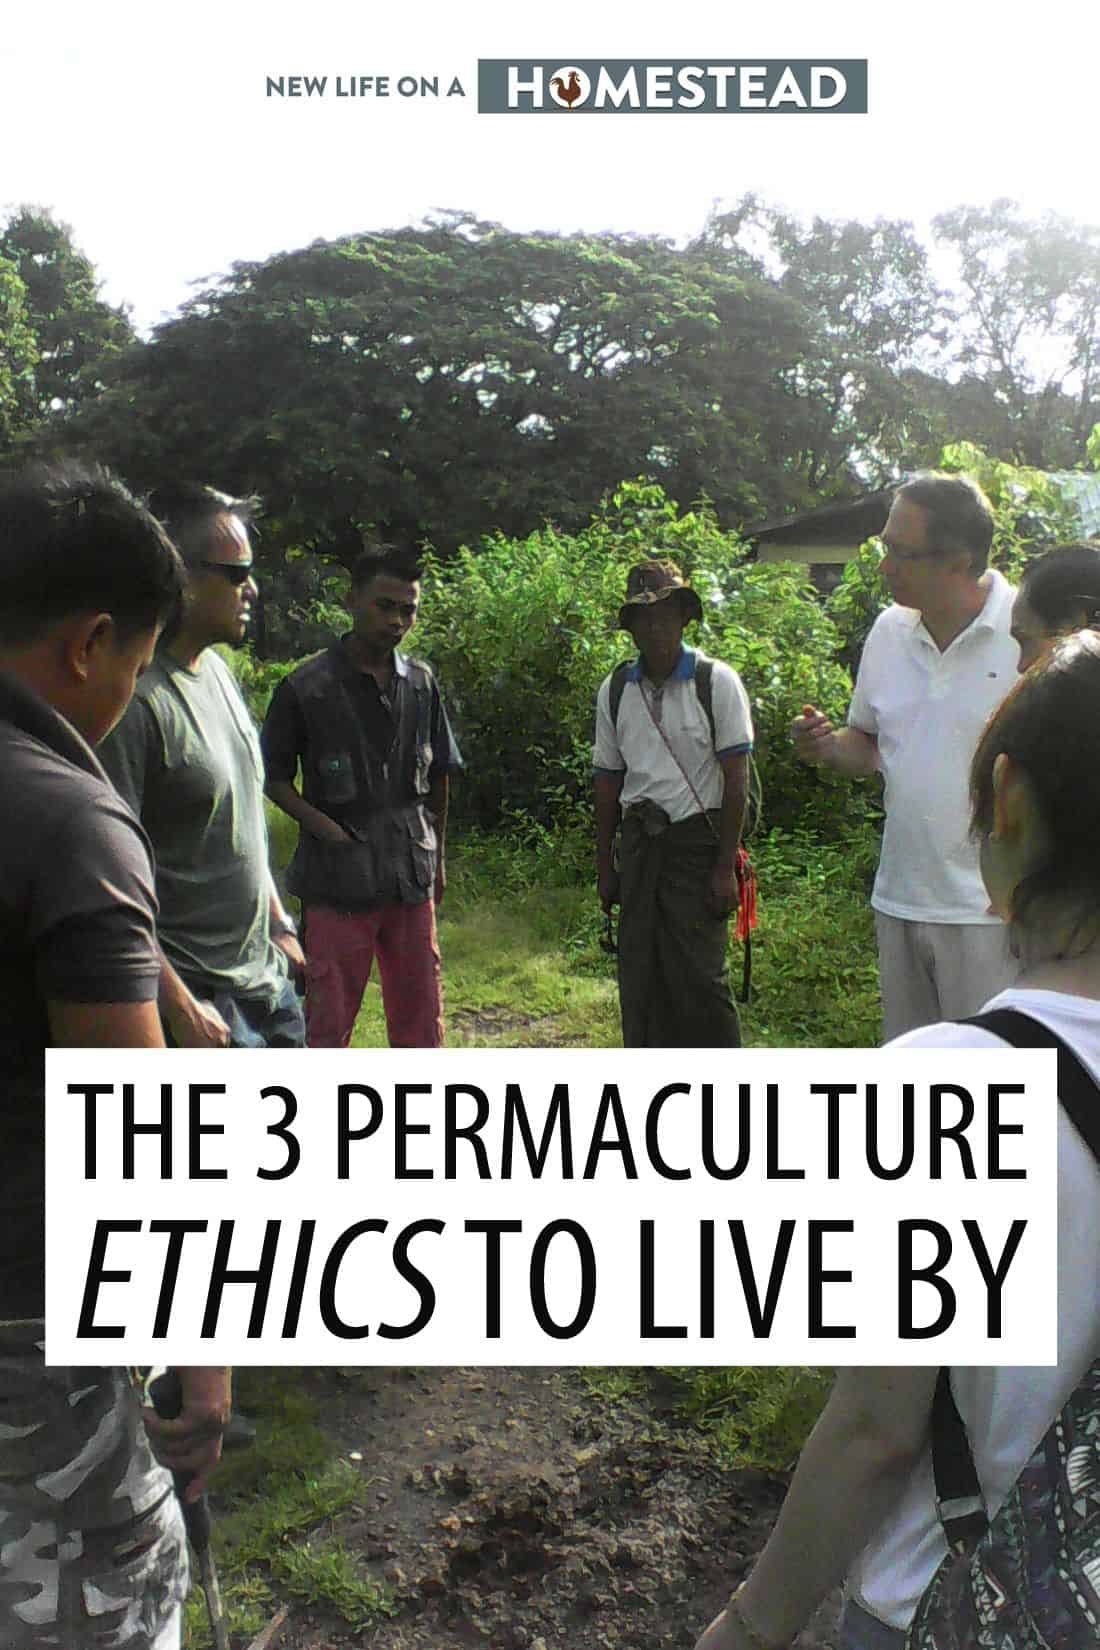 permaculture ethics pin image